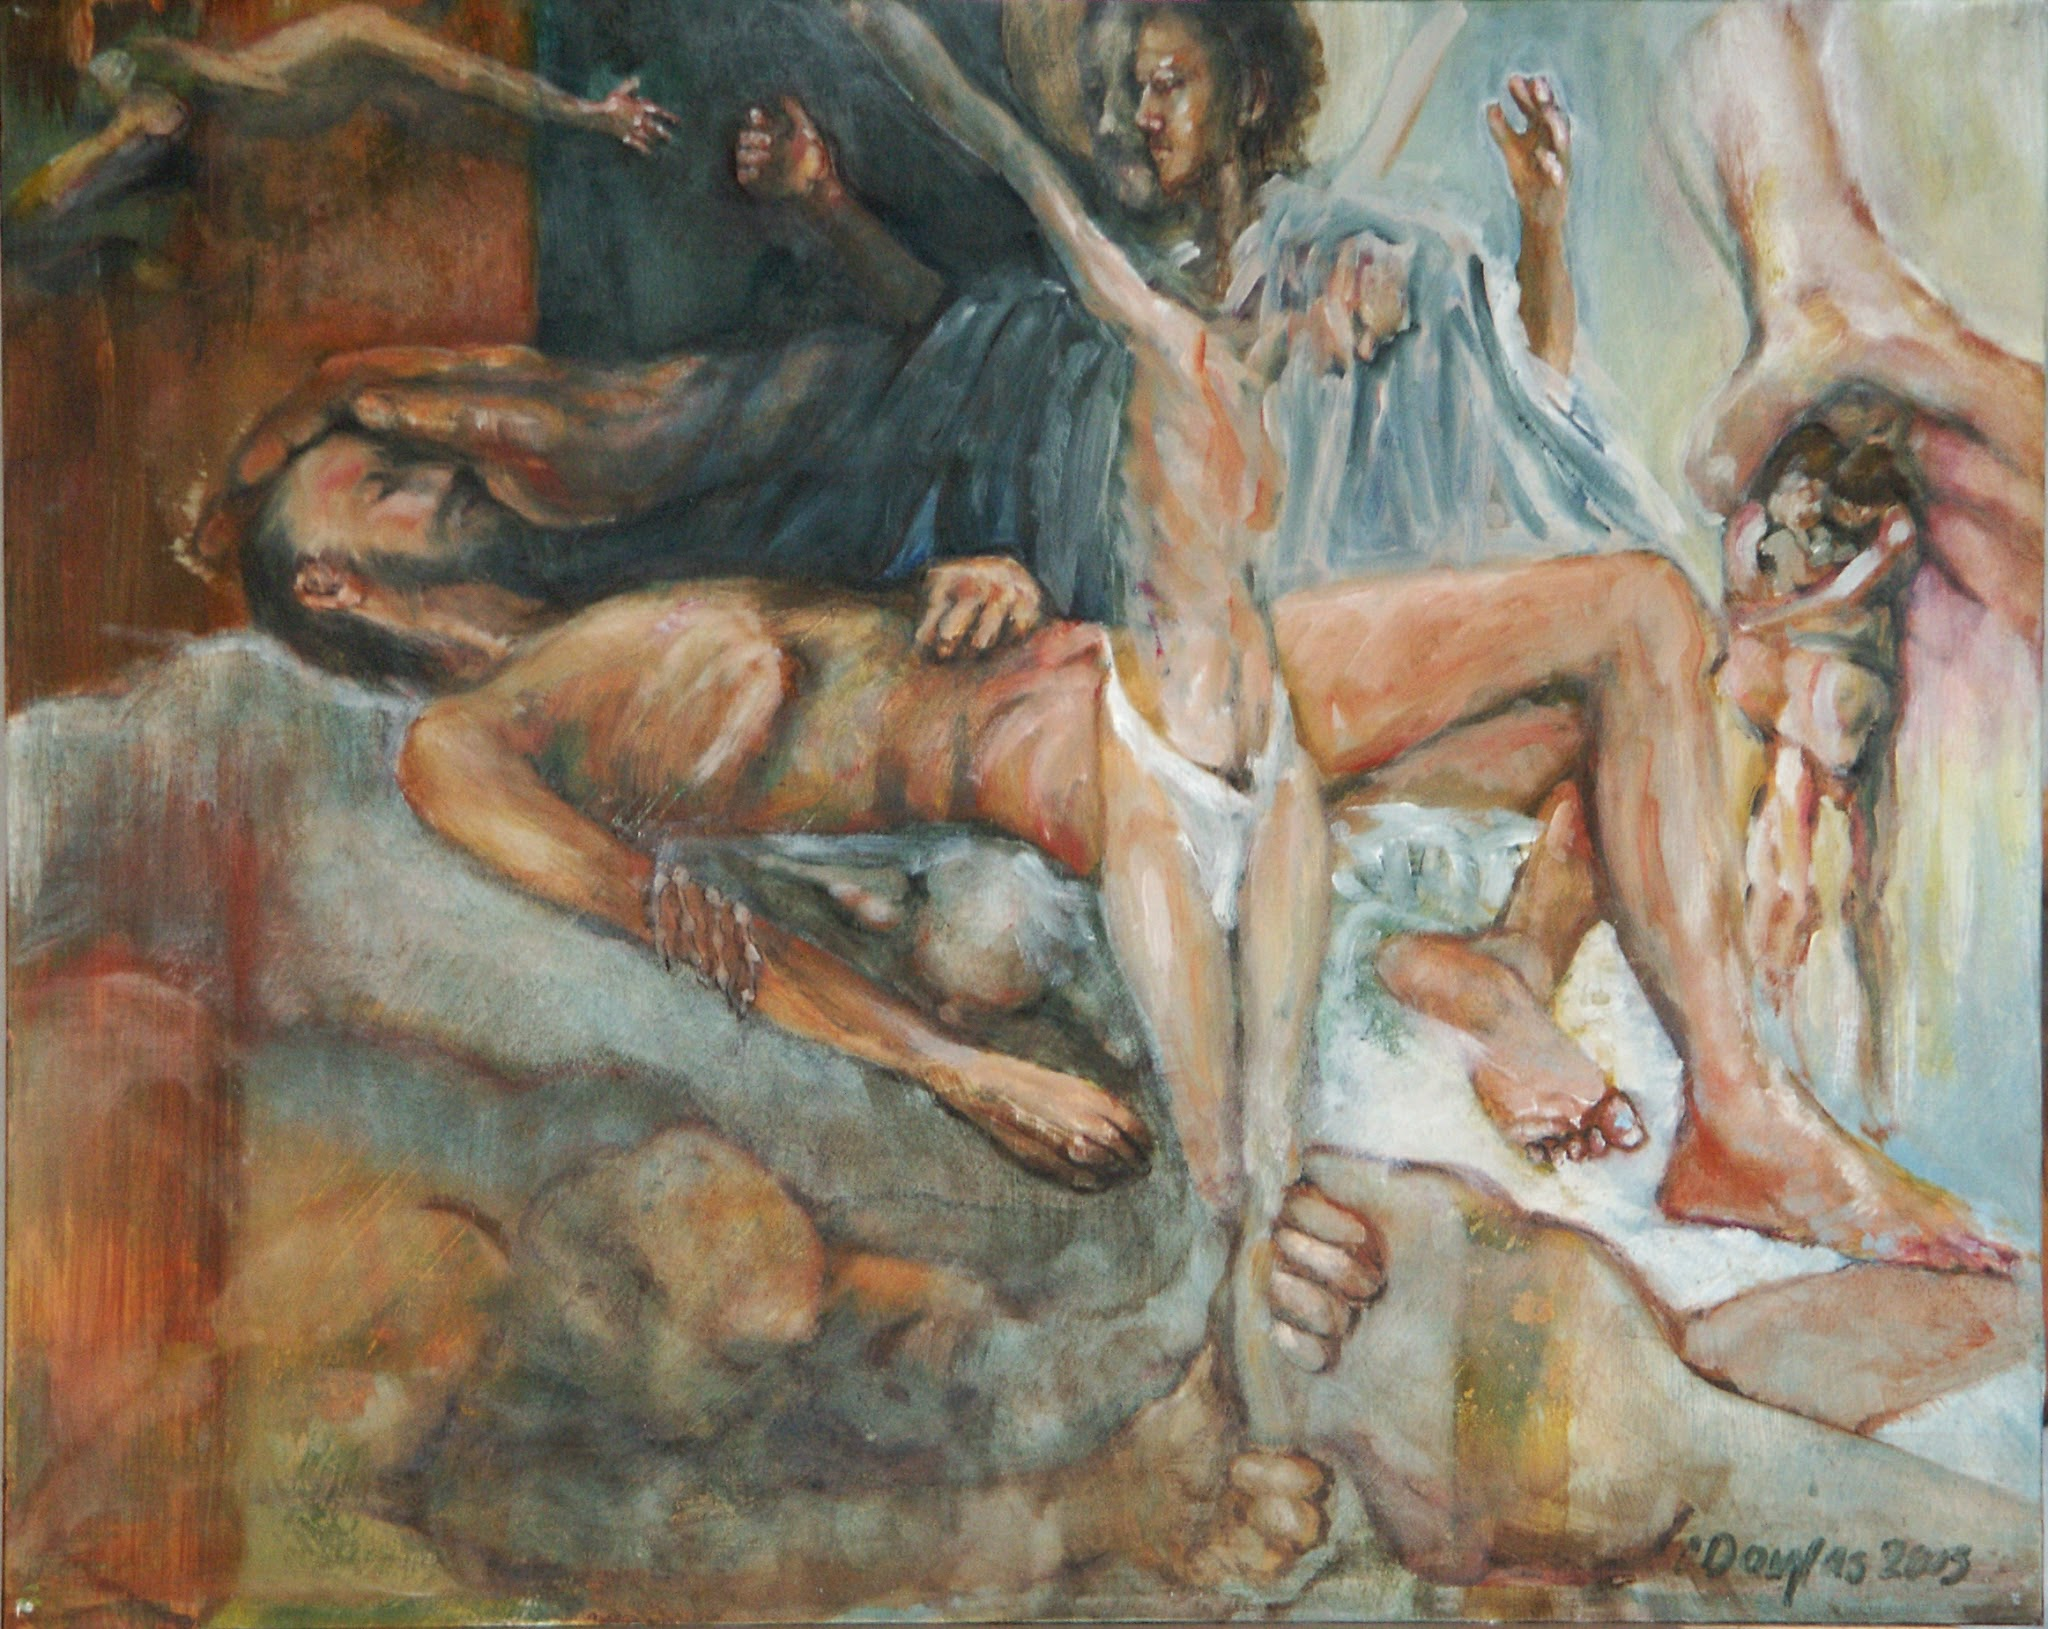 Photo: The Raising of Lazarus 20X16, oil on gessoboard  This depicts the raising of Lazarus and the crucifixion and resurrection of Jesus, since they are closely related events.  On the right, Adam and Eve are evicted from heaven. Along the bottom is the Sheol to which Jesus is being drawn from the cross. Death feasts on Lazarus' decaying body, and the whole human race yearns for Jesus, top left.